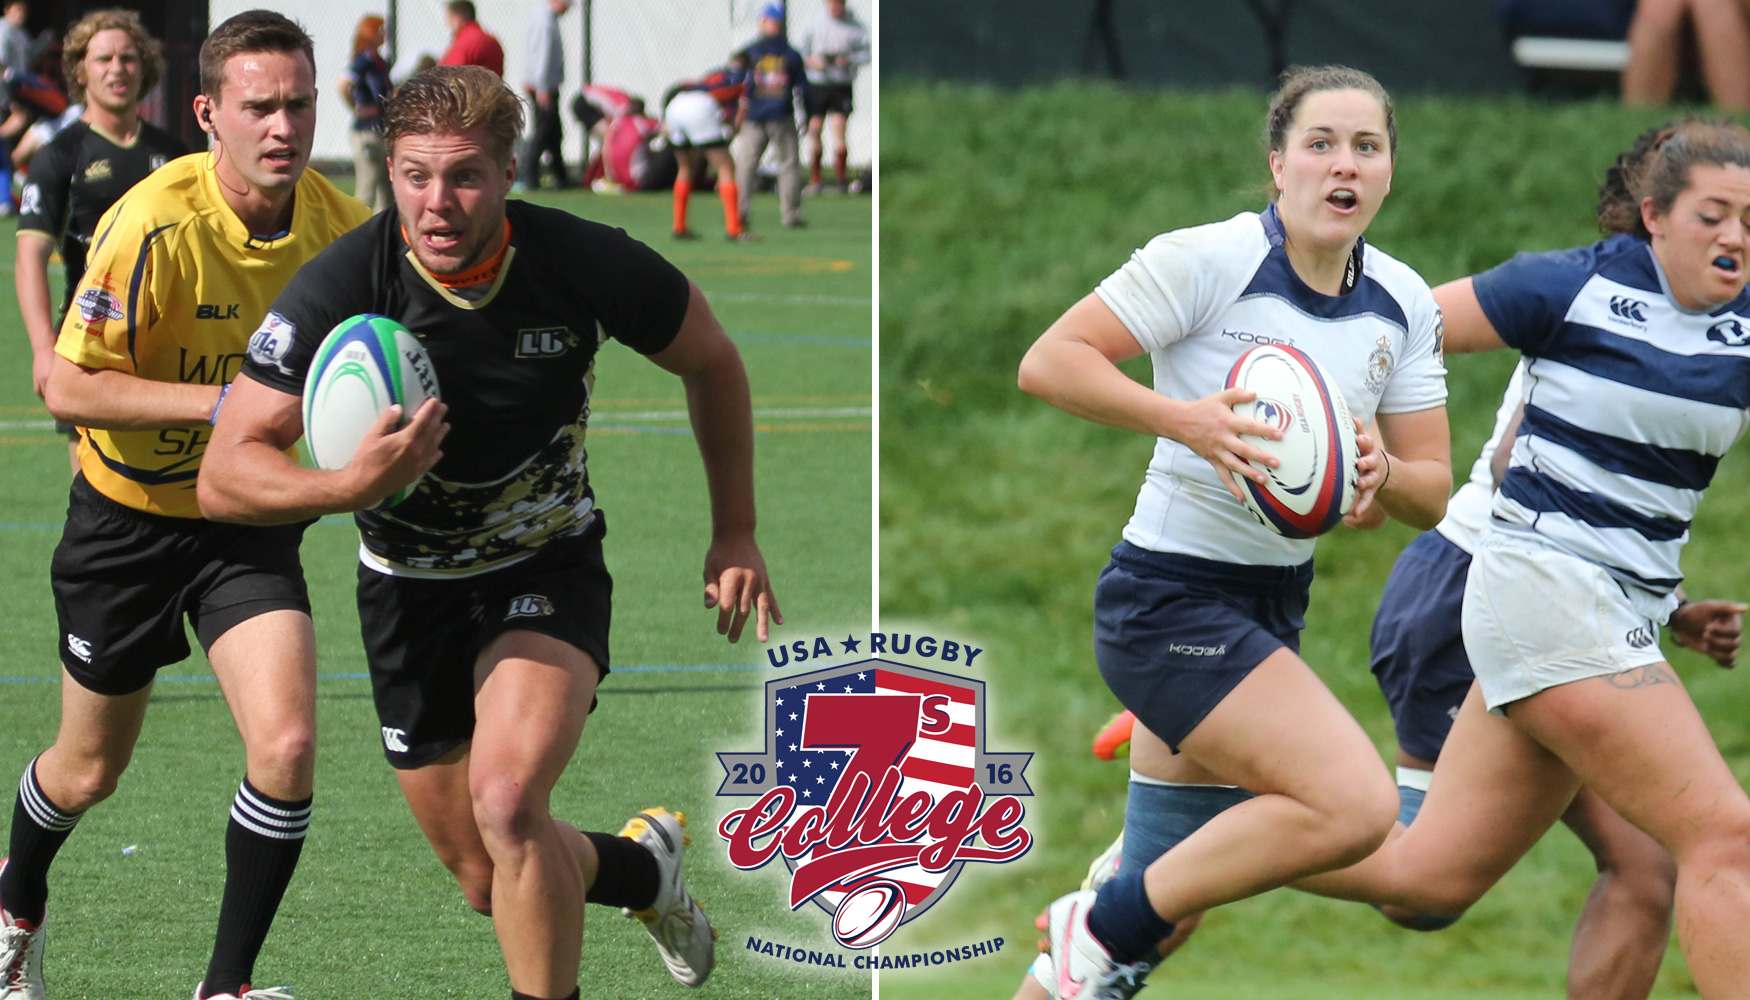 USA College 7s: National Champions highlight massive College 7s field